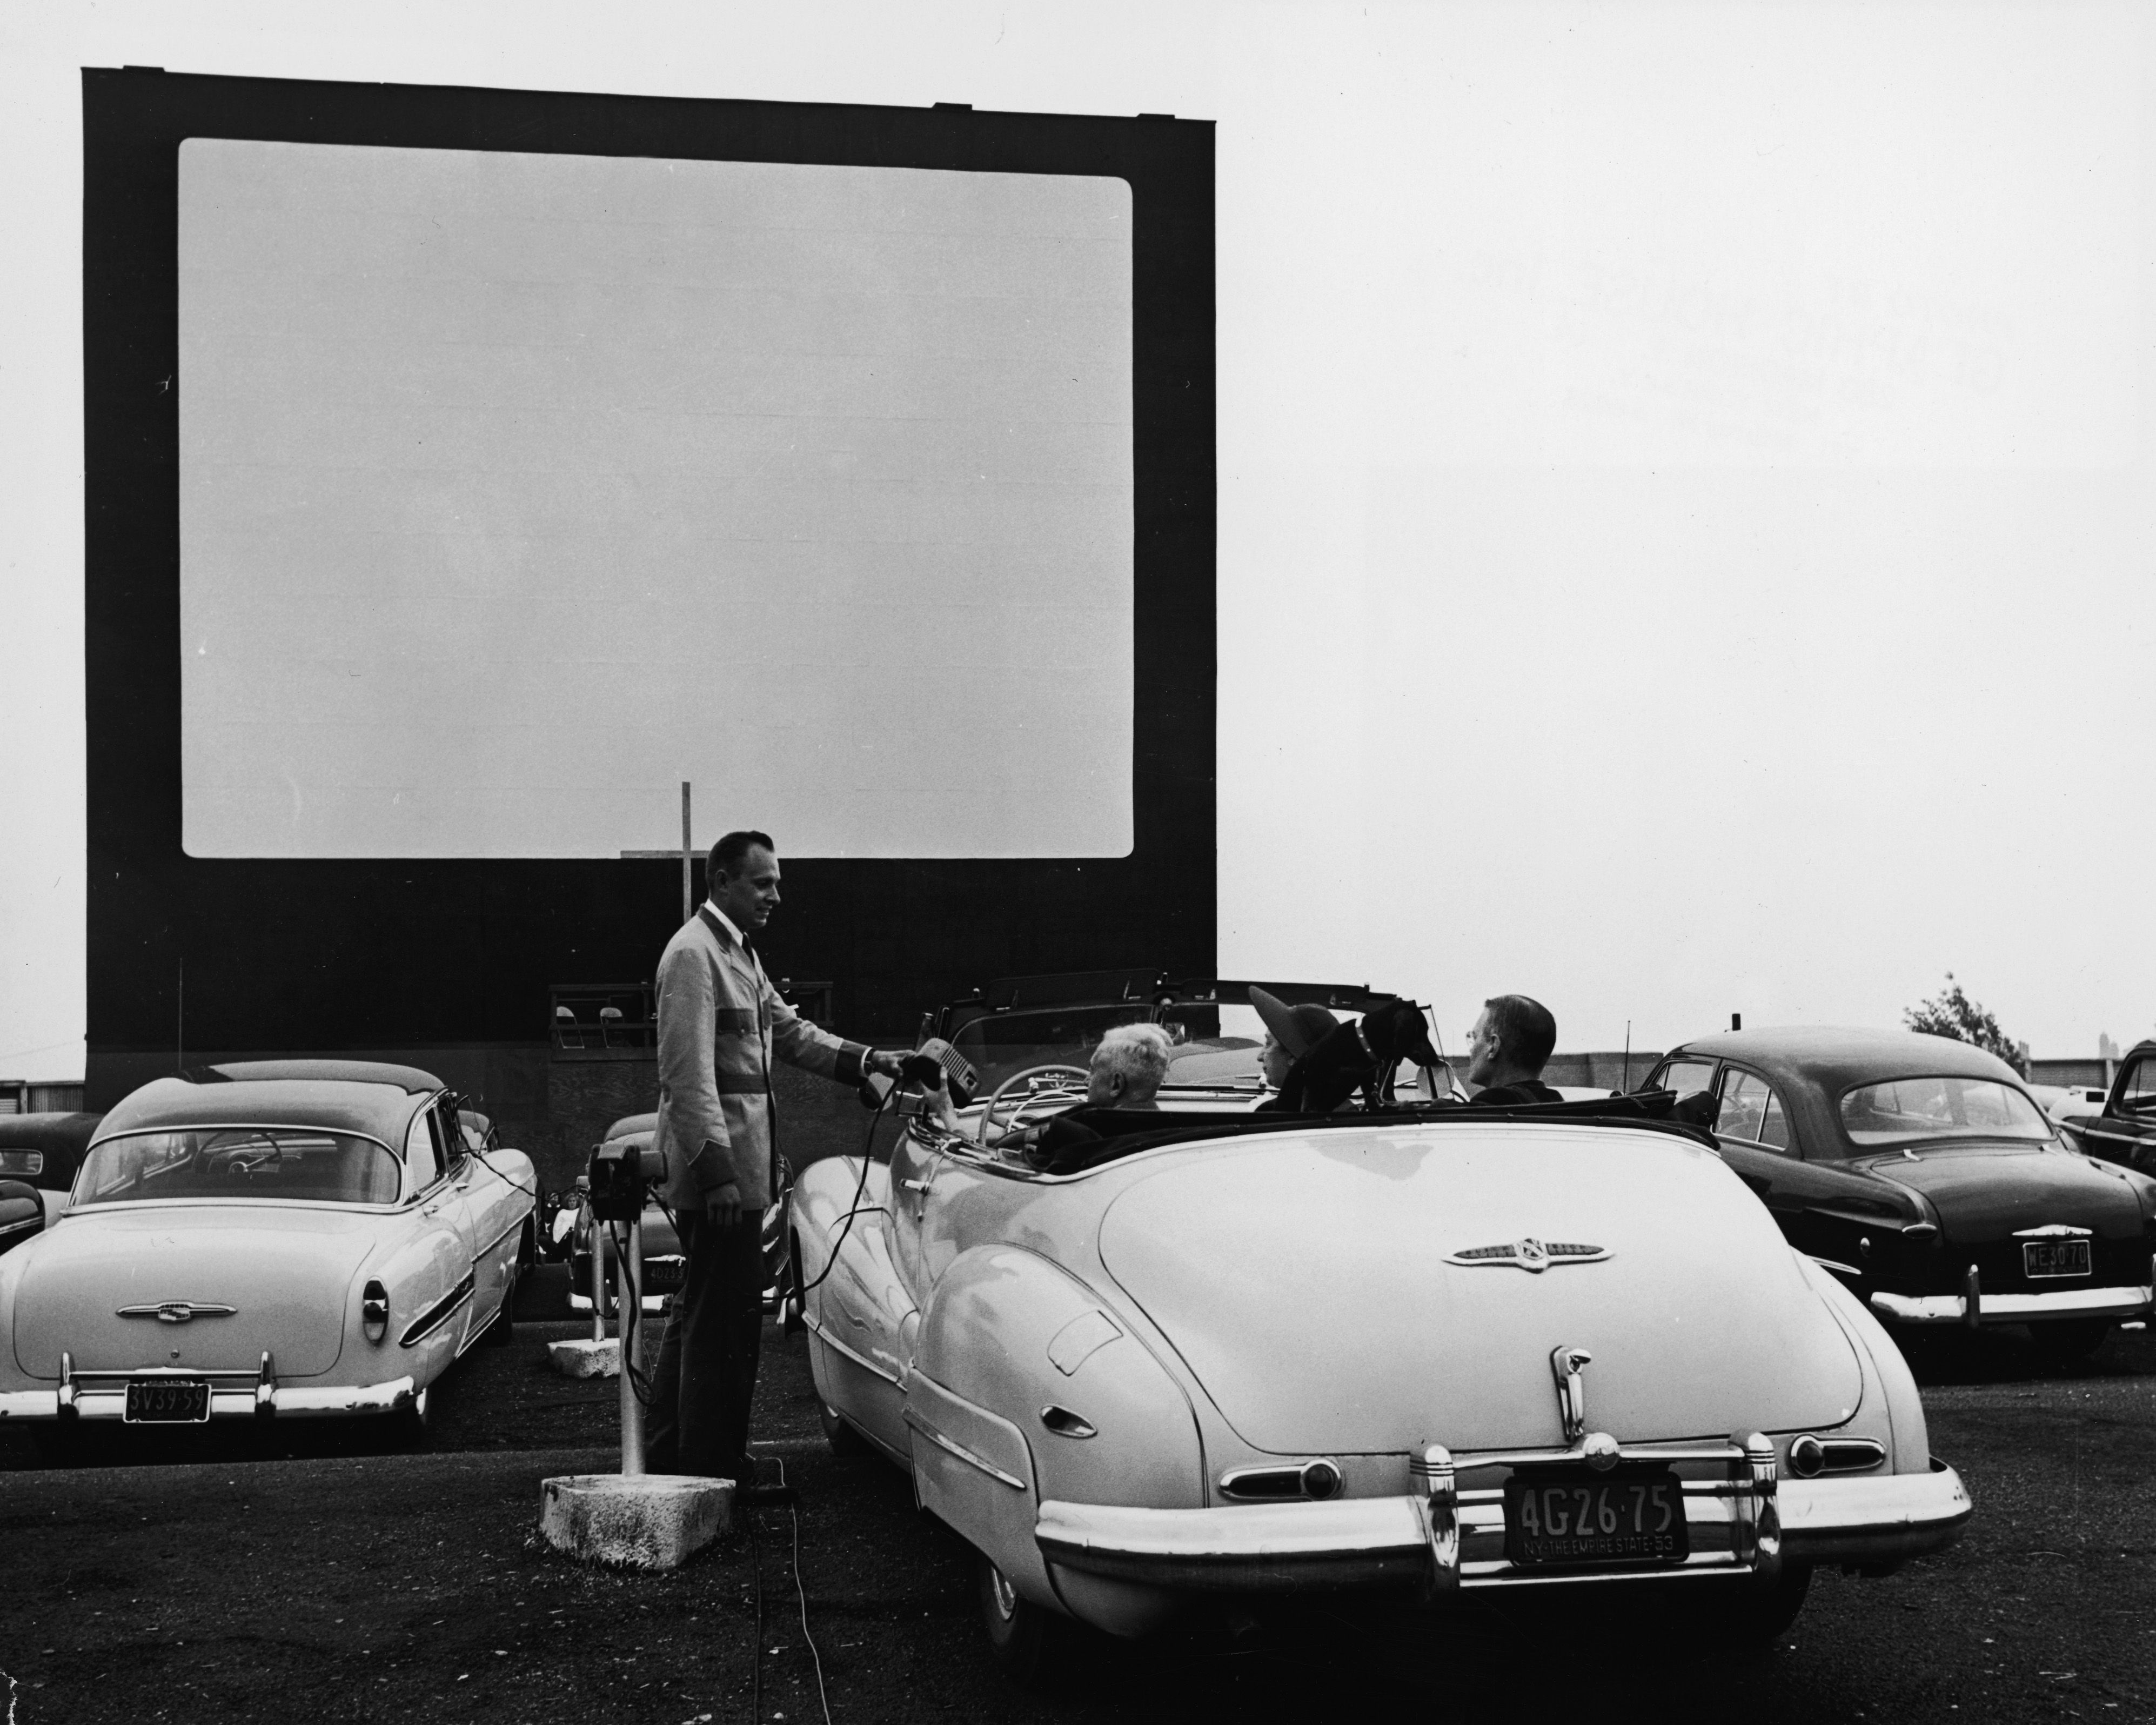 A Uniformed Drive In Theater Attendant Hands A Clip On Speaker To The Driver Of Convertible While The Ca Drive In Movie Theater Drive In Movie Drive In Theater